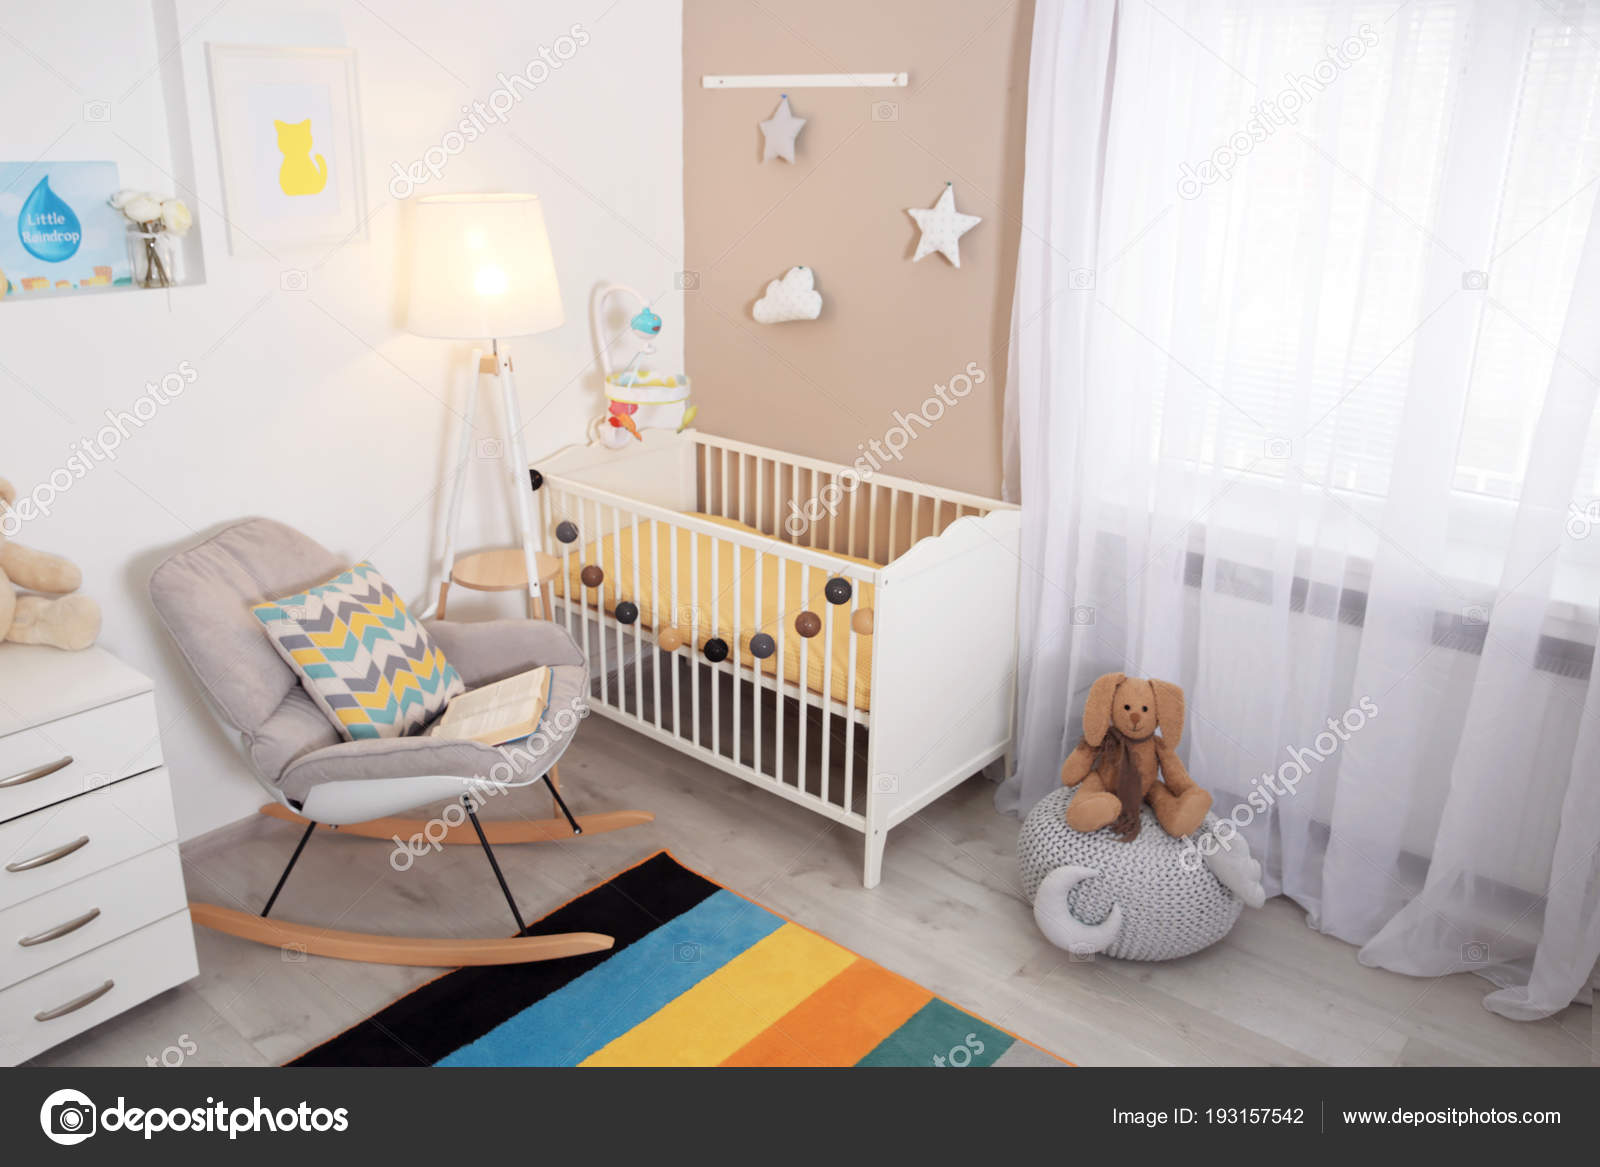 Cozy baby room interior with crib and rocking chair 23